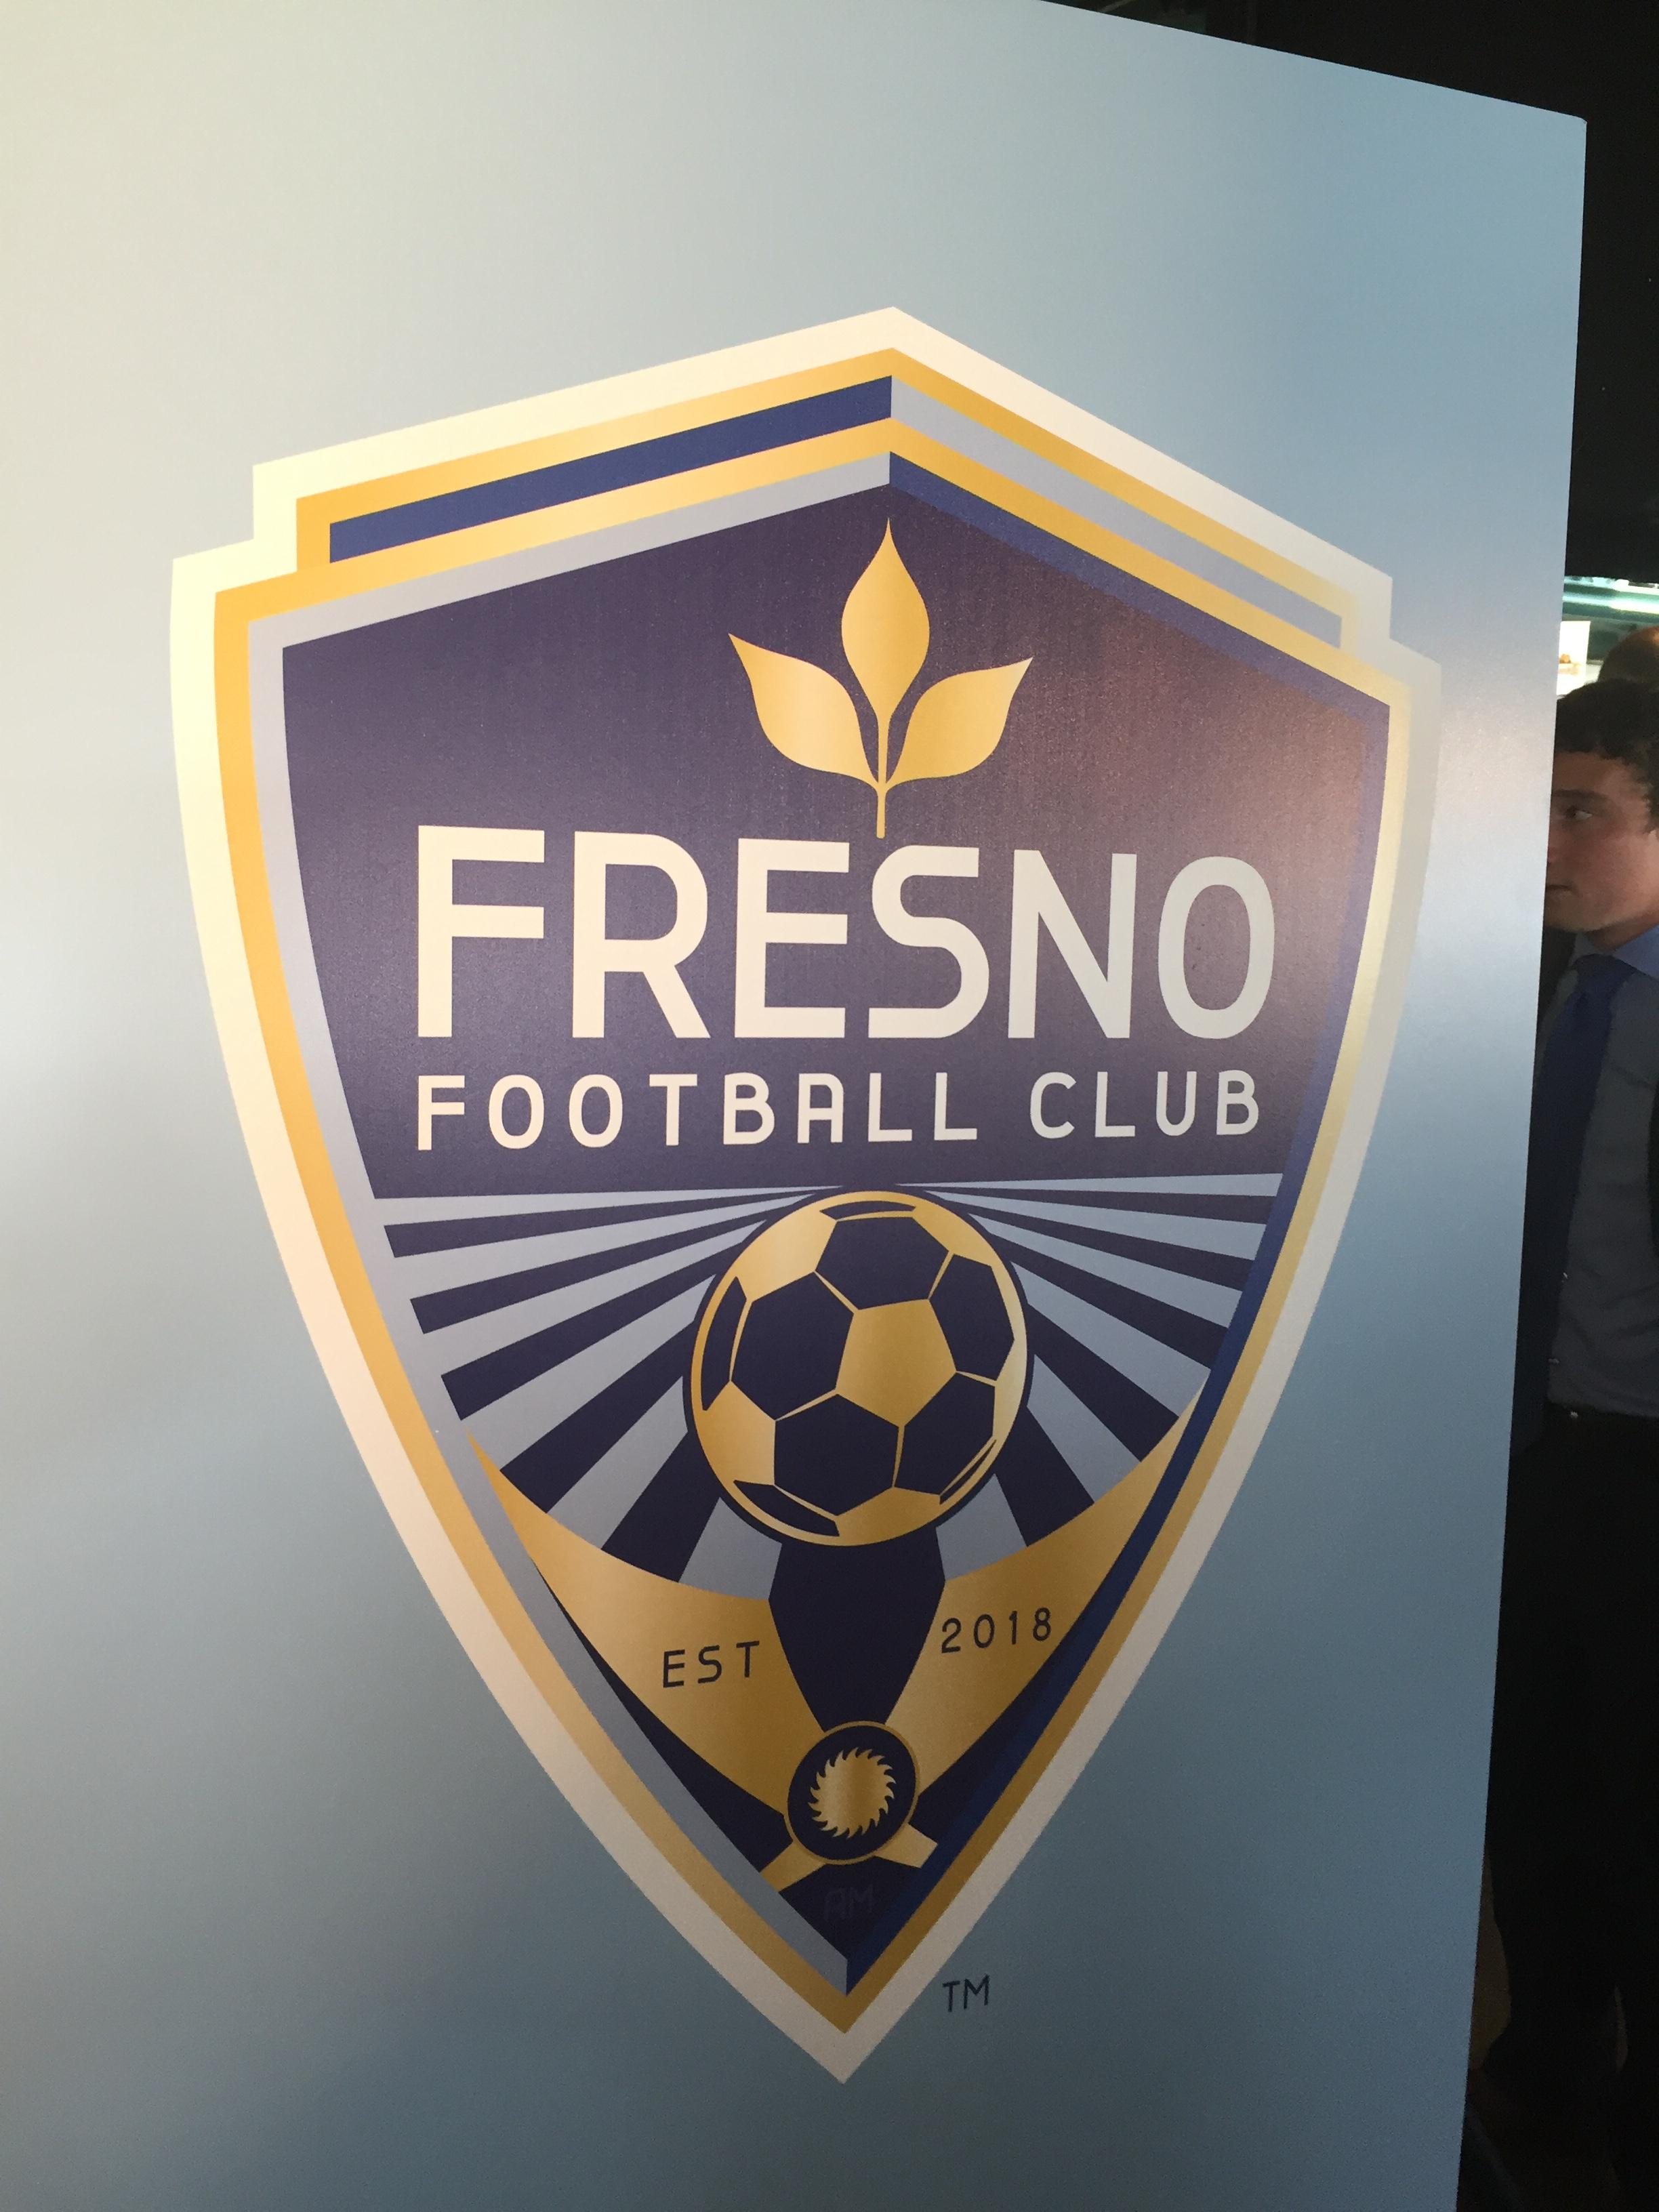 The Fresno Football Club, or Fresno FC, will begin playing as a USL team in March of 2018.